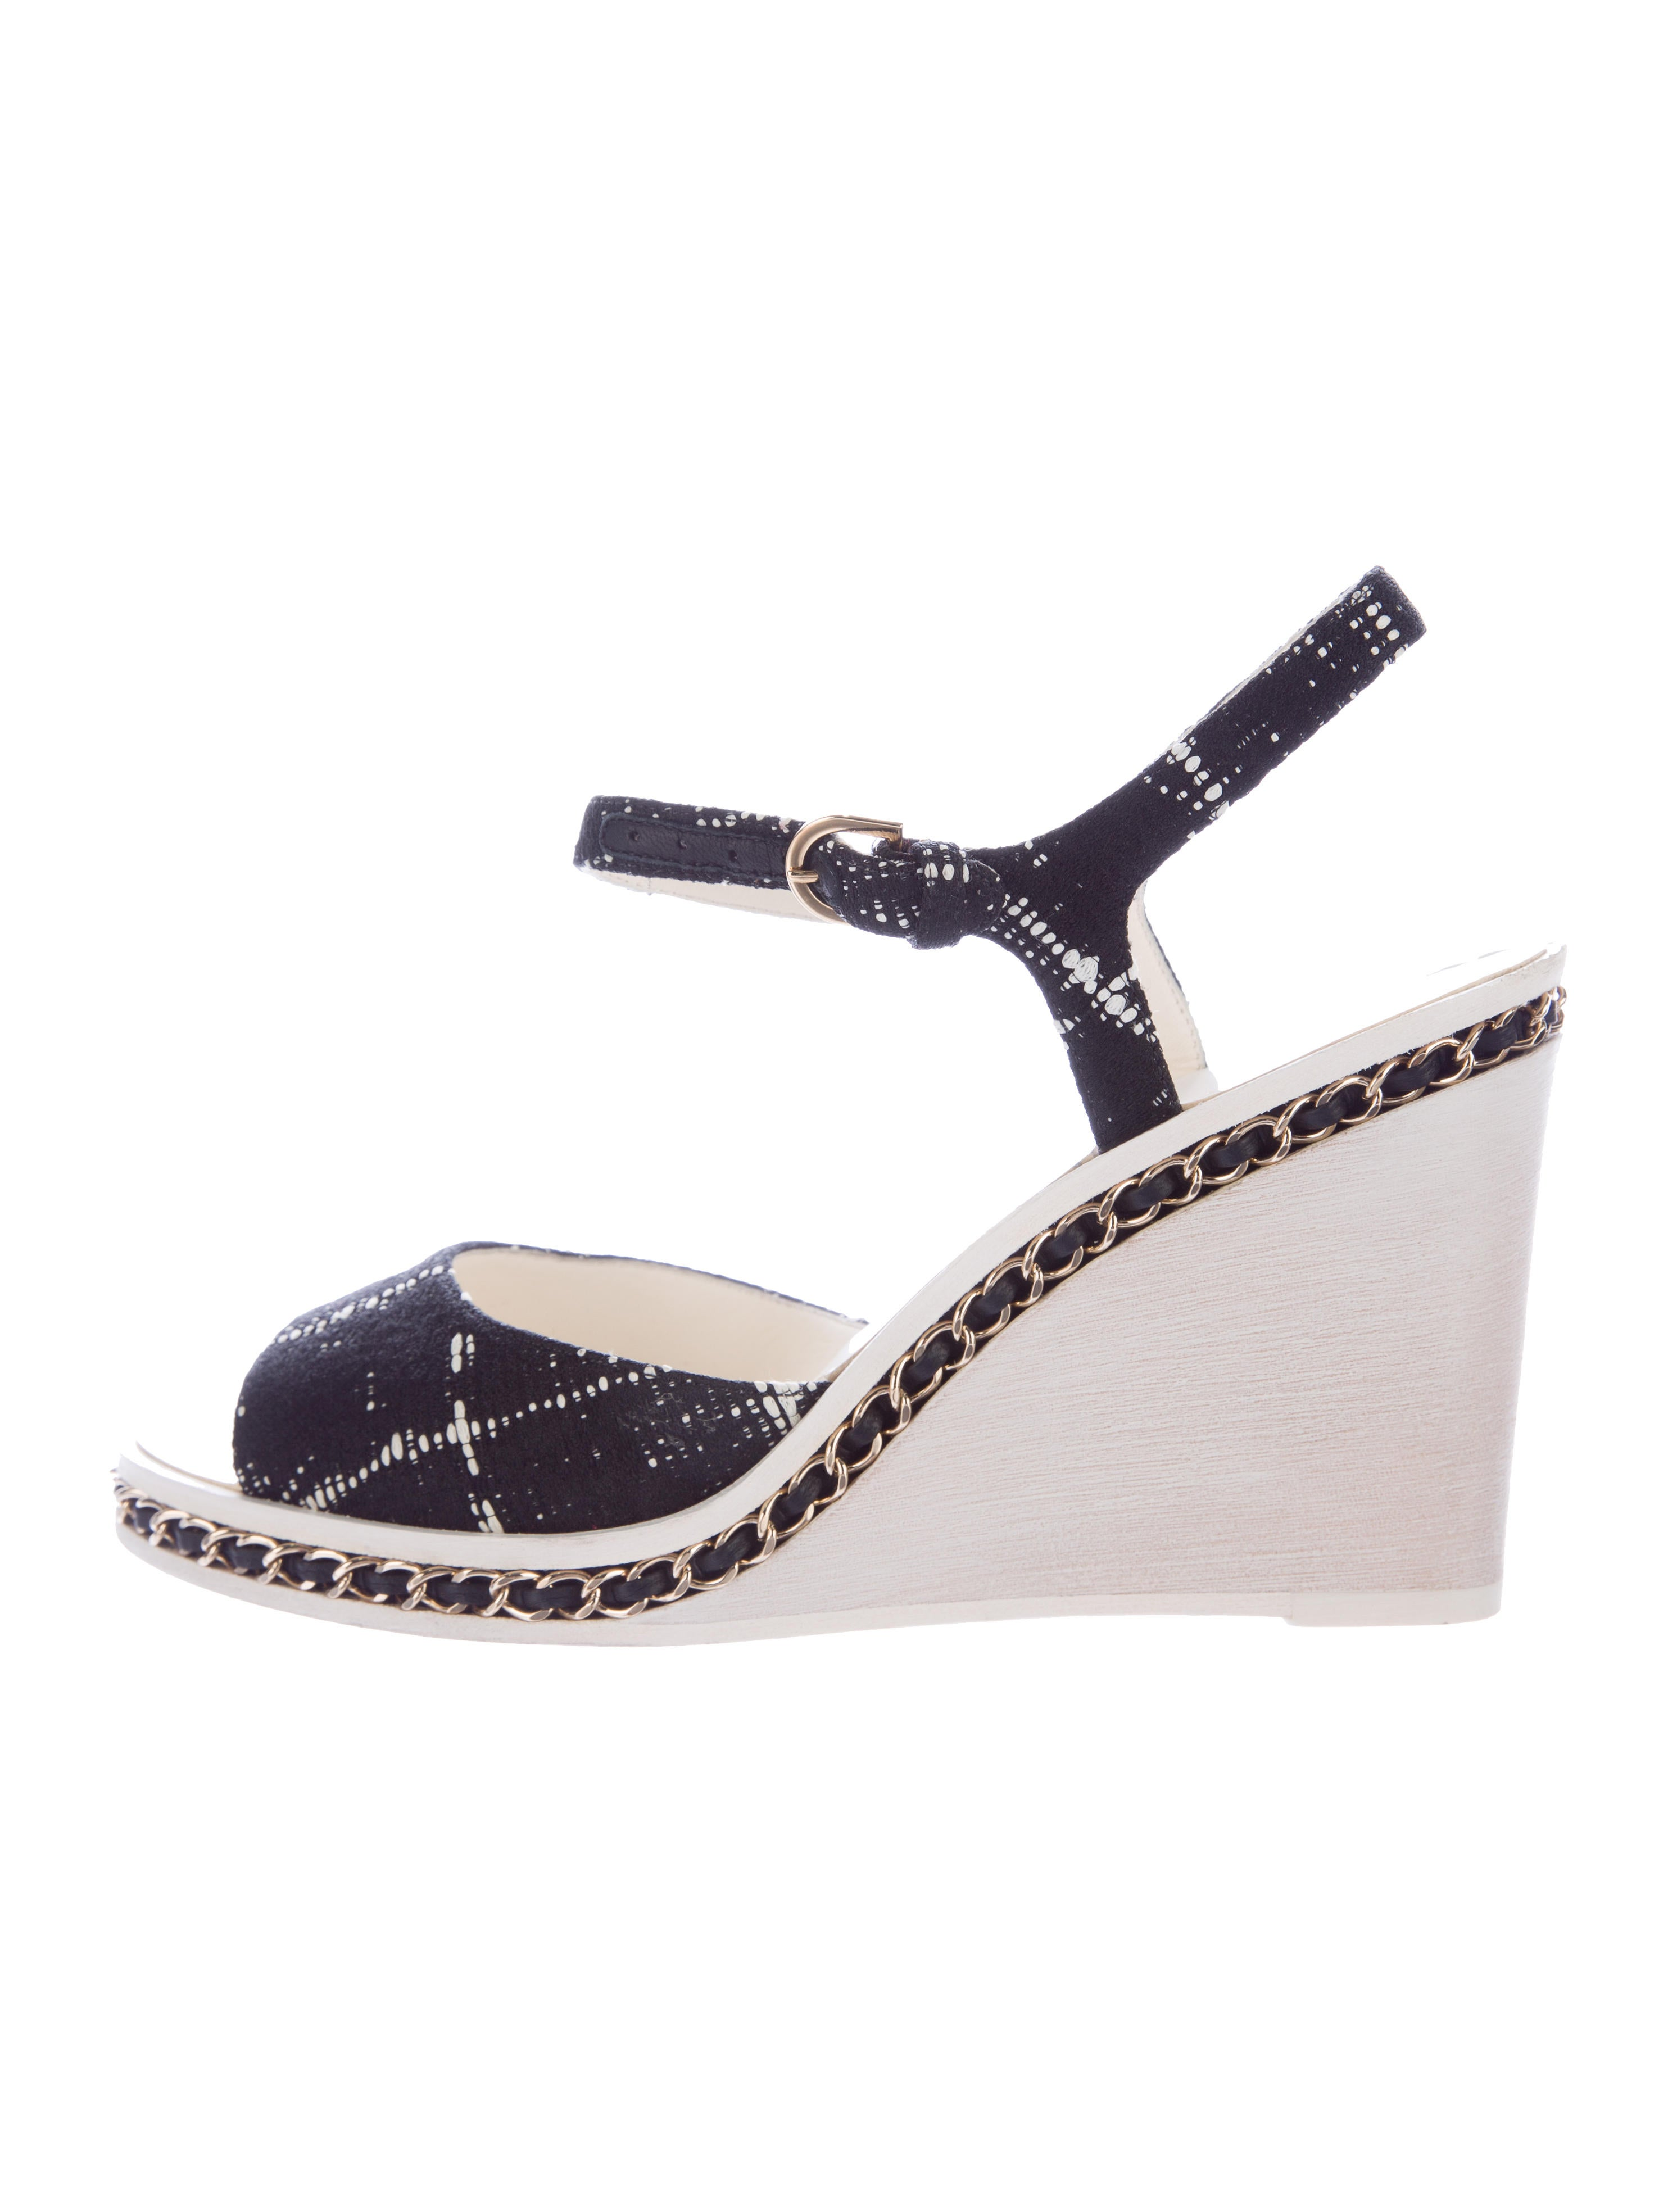 chanel tweed wedge sandals shoes cha128910